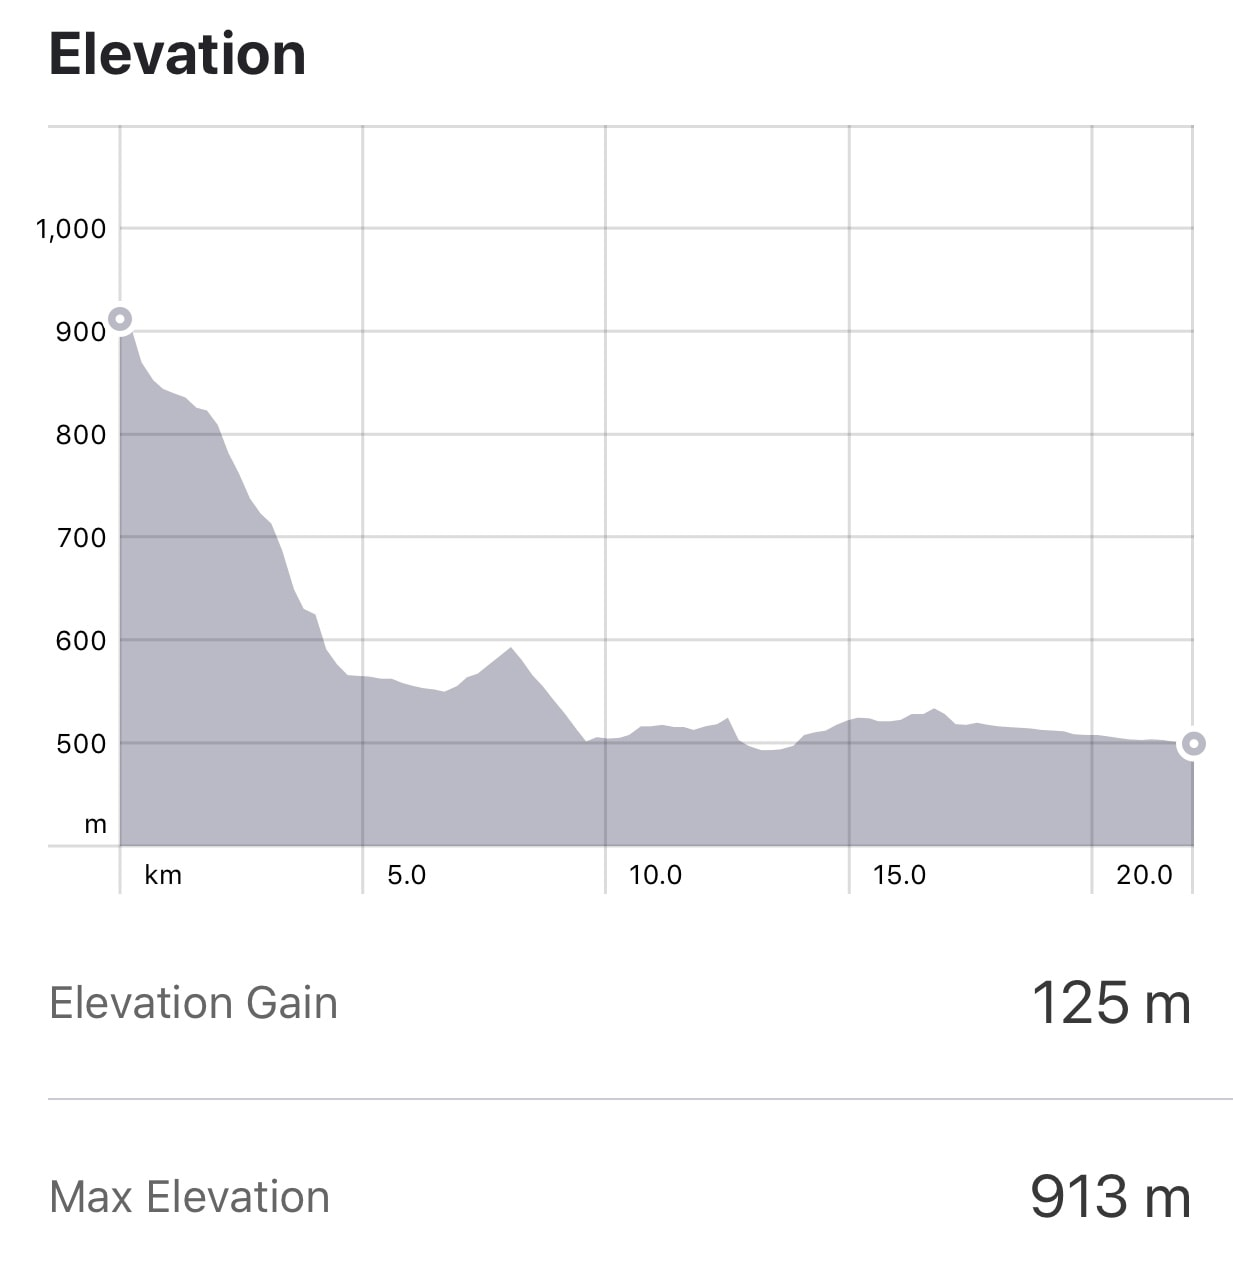 Strava: Riego de Ambros to Camponaraya Elevation